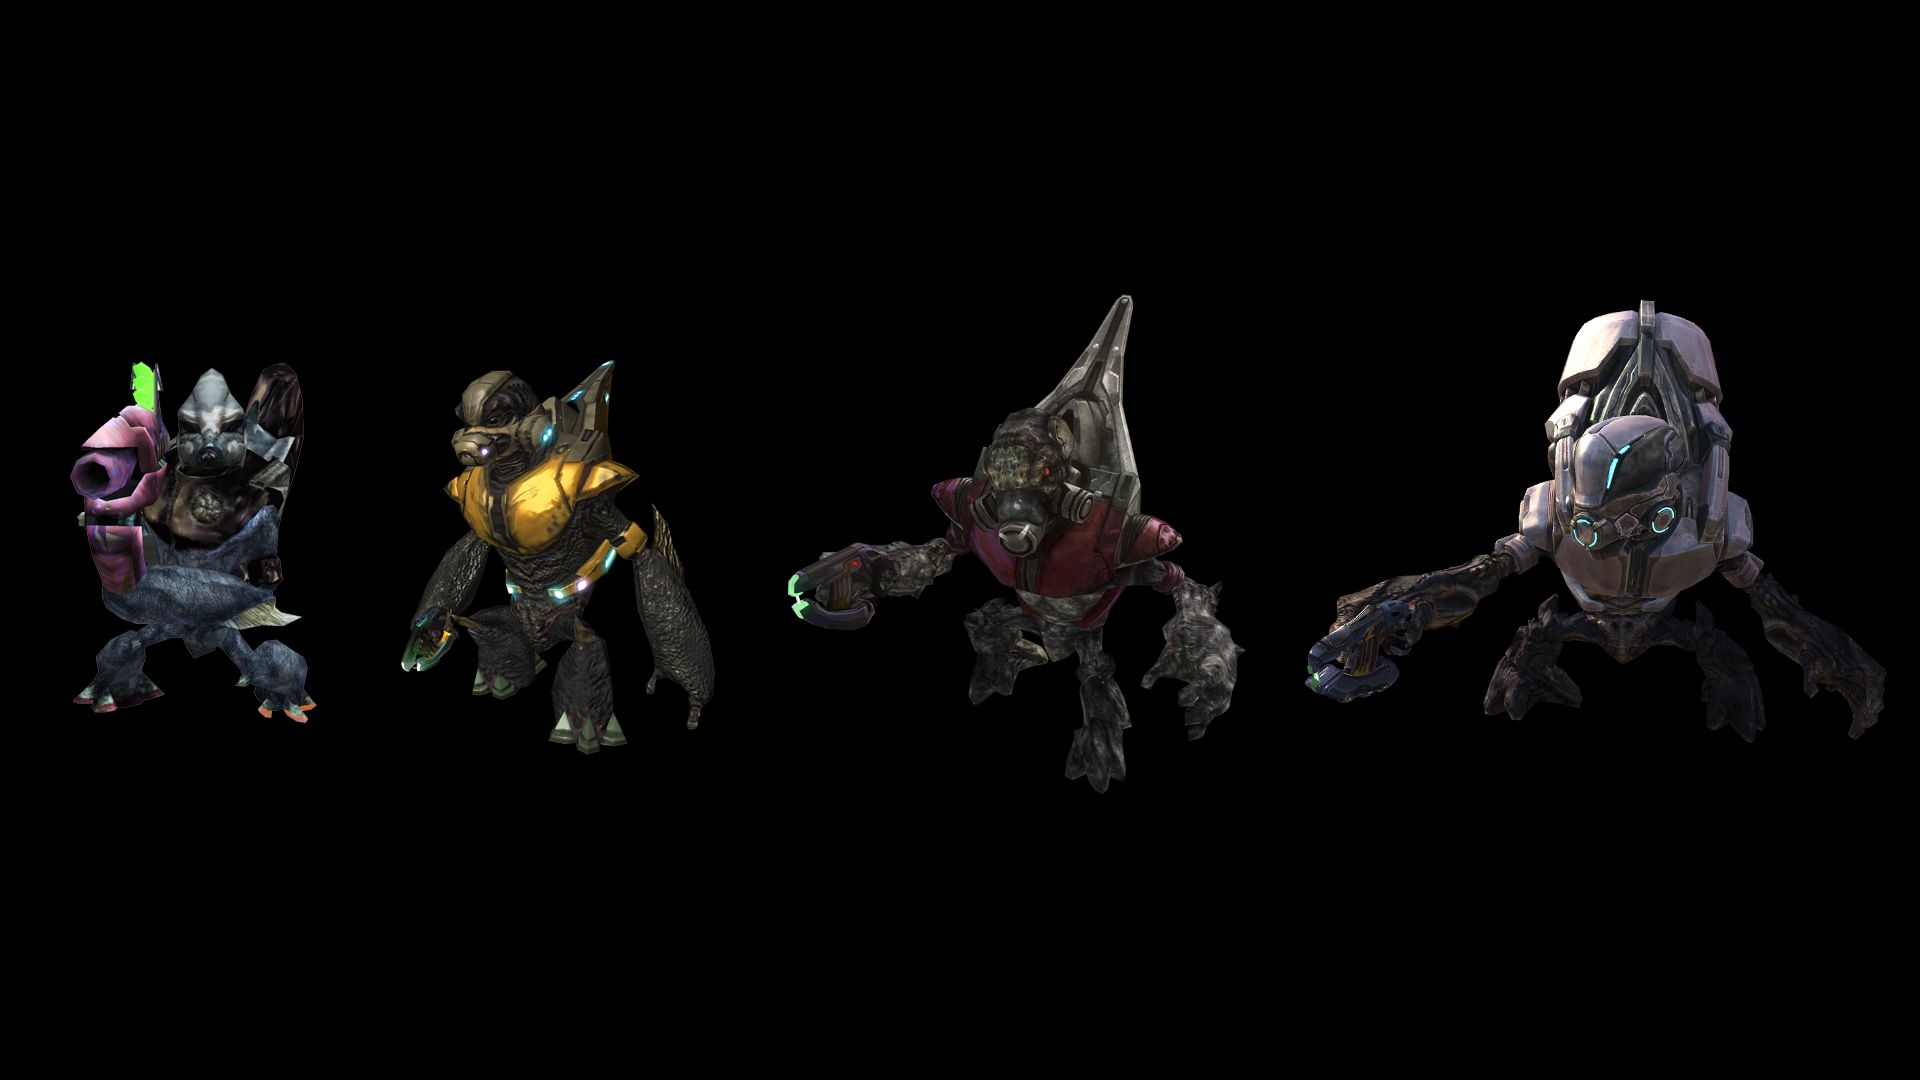 1331 - Covenant Grunt: Evolution of Grunt models, from Halo: Combat